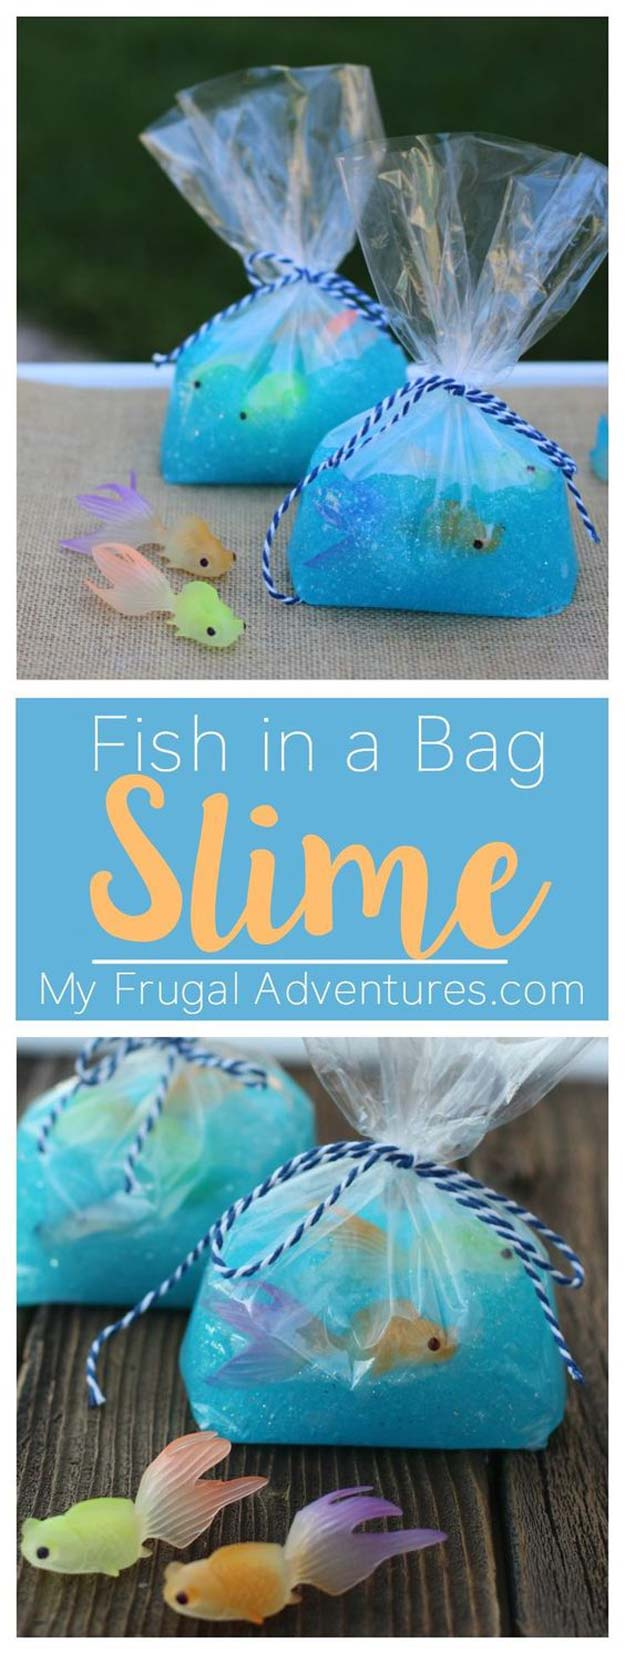 Best DIY Slime Recipes - DIY Fish in a Bag Slime - Cool and Easy Slime Recipe Ideas Without Glue, Without Borax, For Kids, With Liquid Starch, Cornstarch and Laundry Detergent - How to Make Slime at Home - Fun Crafts and DIY Projects for Teens, Kids, Teenagers and Teens - Galaxy and Glitter Slime, Edible Slime #slime #slimerecipes #slimes #diyslime #teencrafts #diyslime